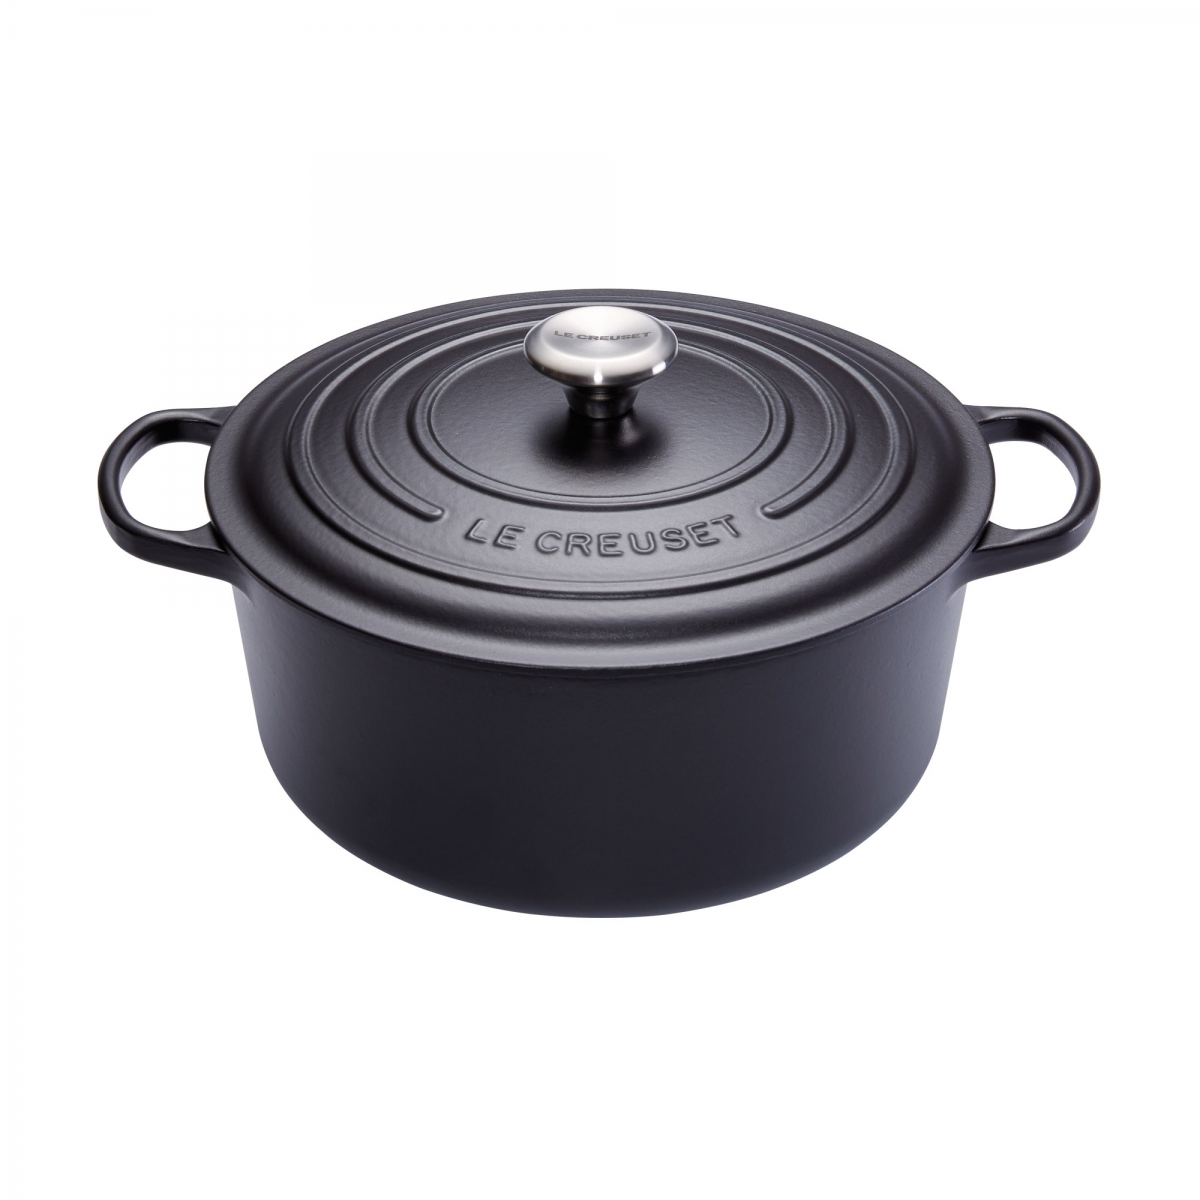 cocotte en fonte ronde 30 cm noir mat le creuset signature. Black Bedroom Furniture Sets. Home Design Ideas